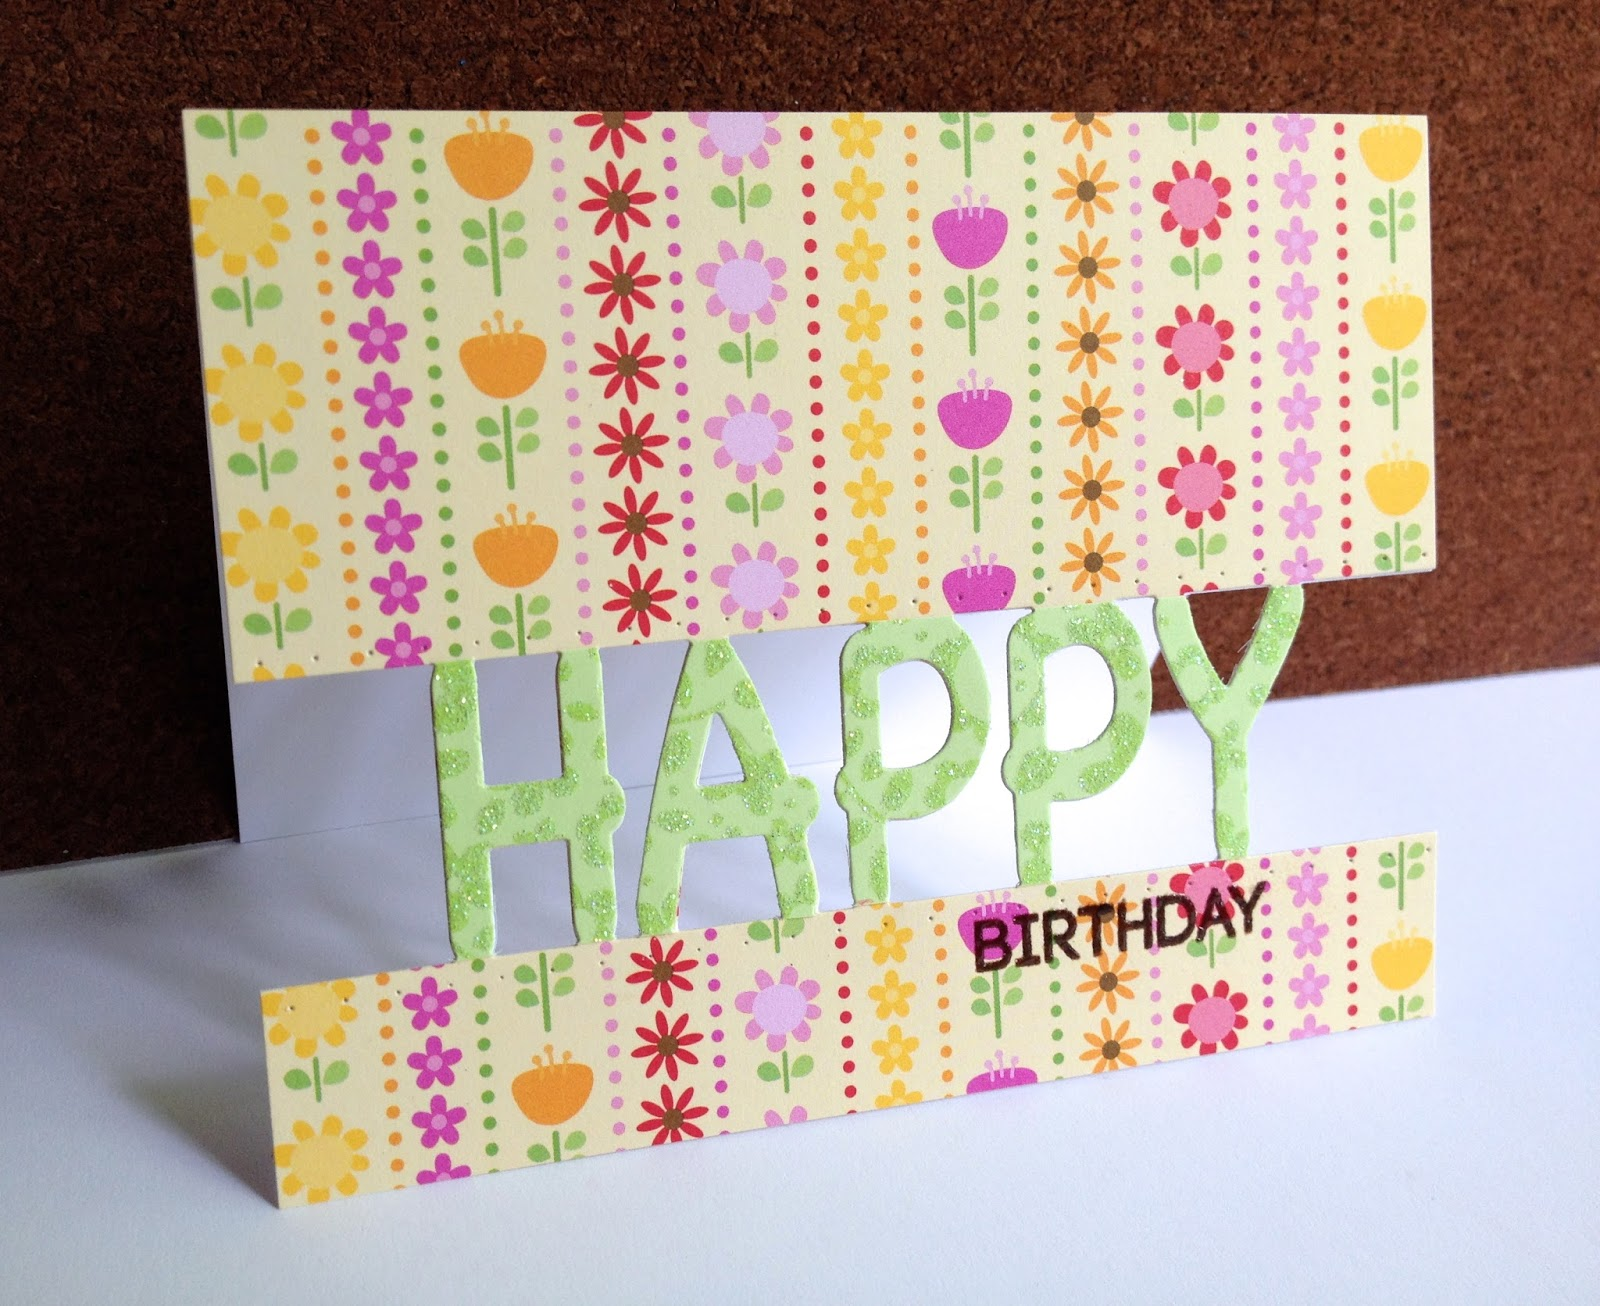 The Papers On All These Cards Are By Doodlebug From A Value Pack Of I Just Got Green Is Floral Sheet That Has Glitter It